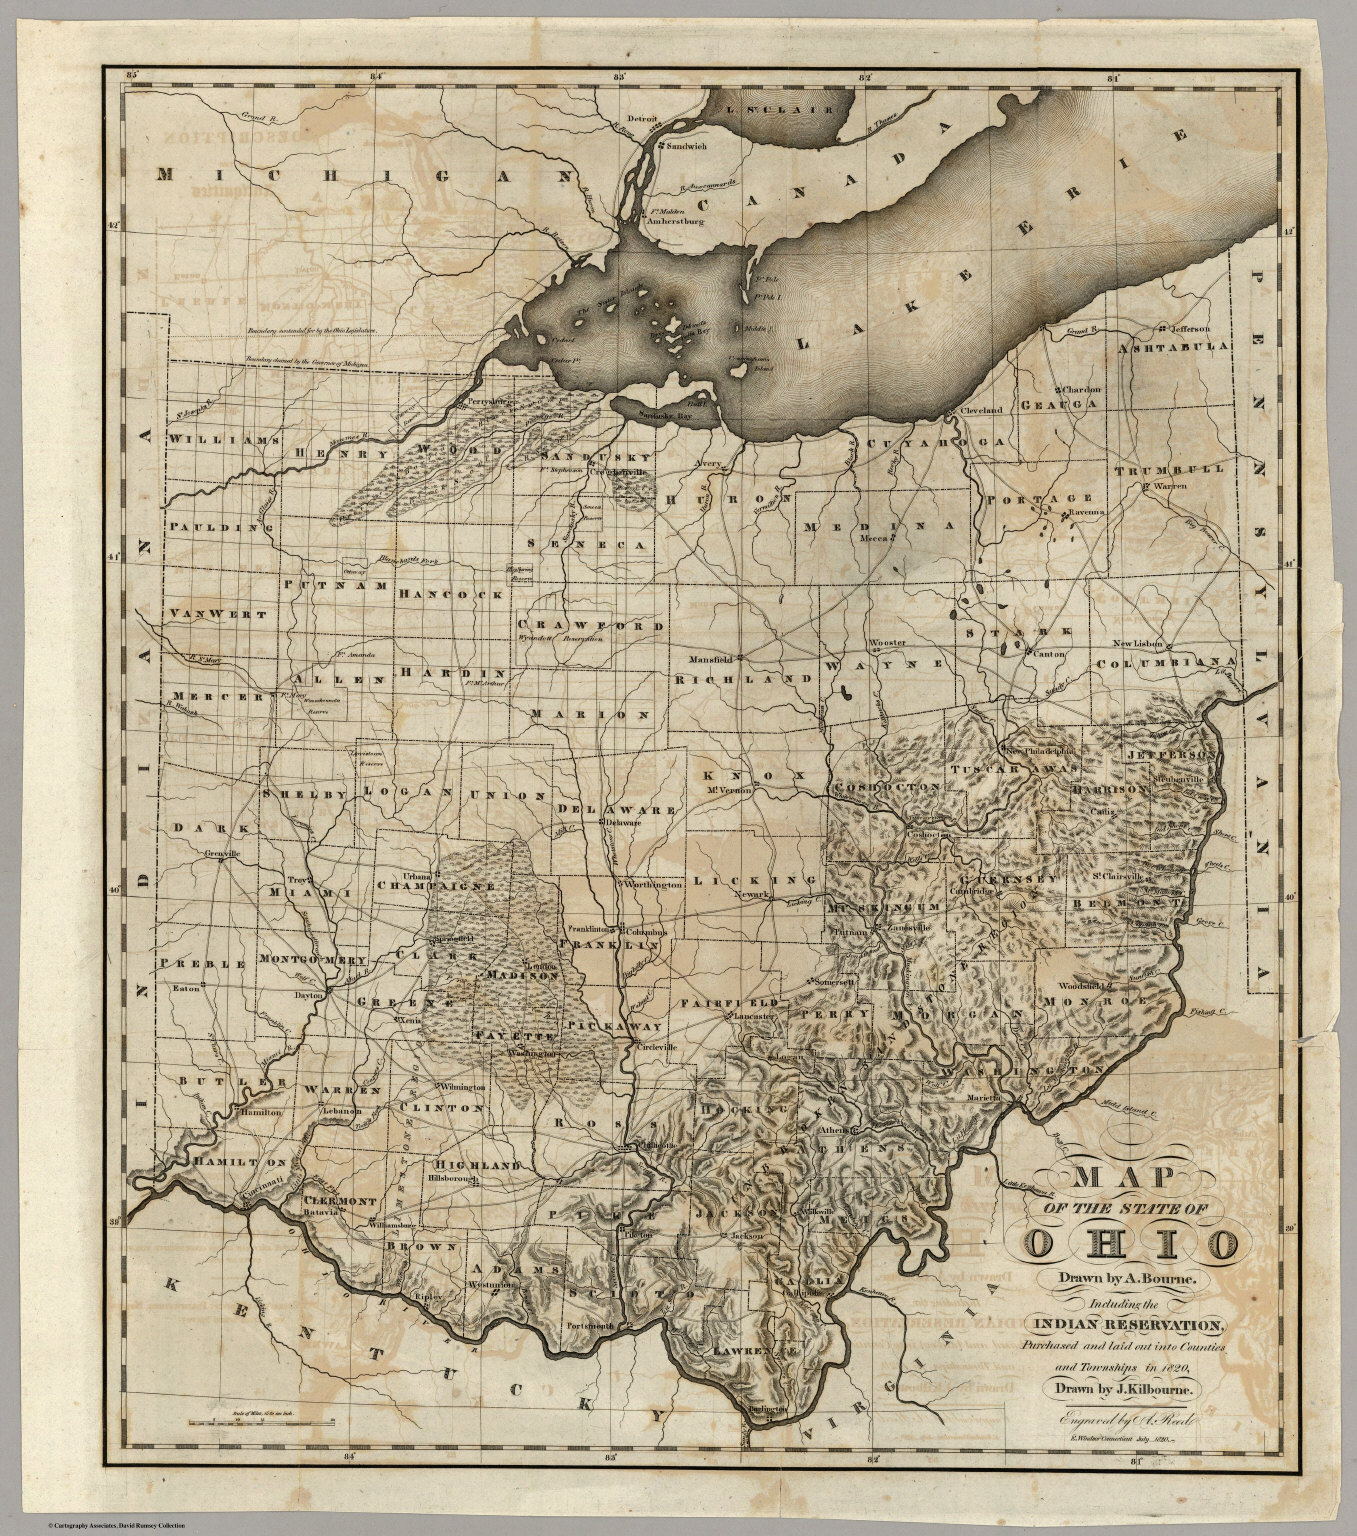 Map Of The State Of Ohio - David Rumsey Historical Map Collection